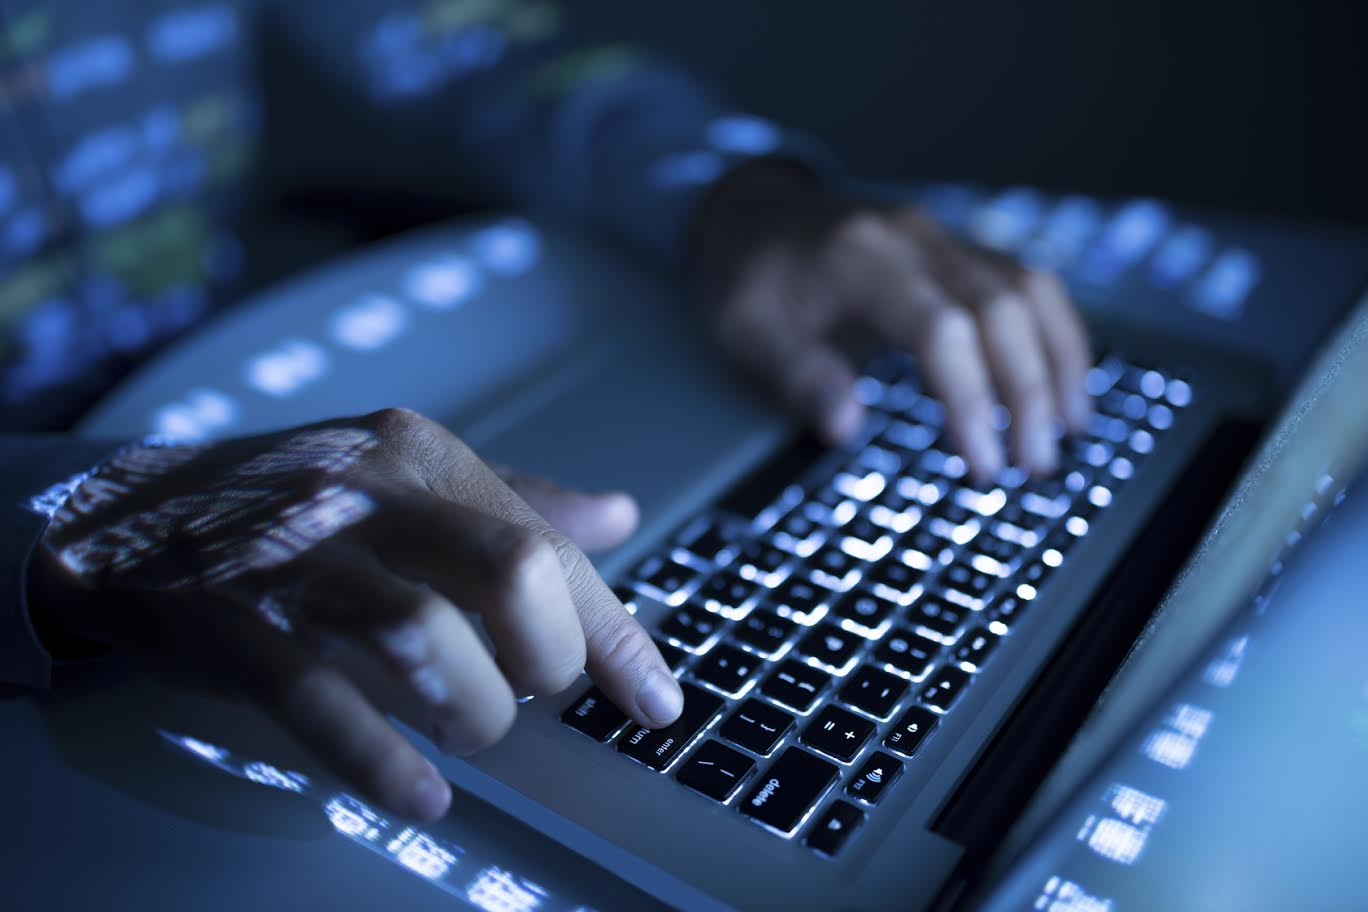 Scammers using social media brands to launch phishing, fraud and malware attacks